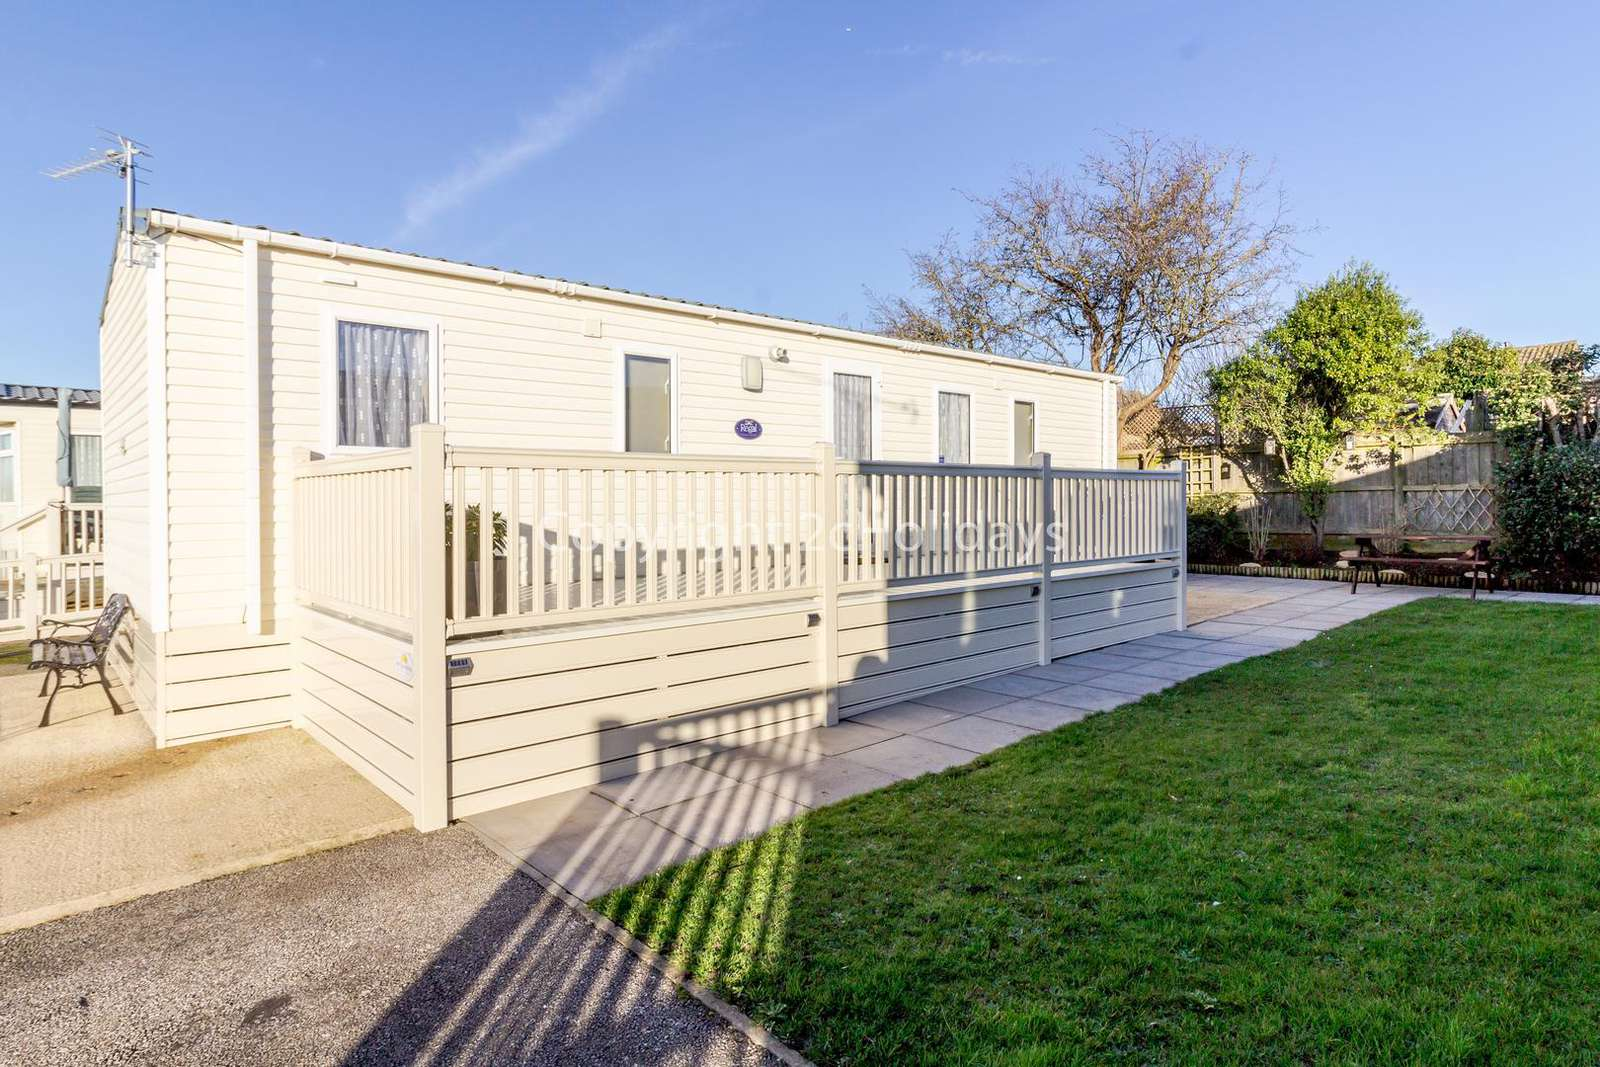 Luxury holiday home with a large decking area!